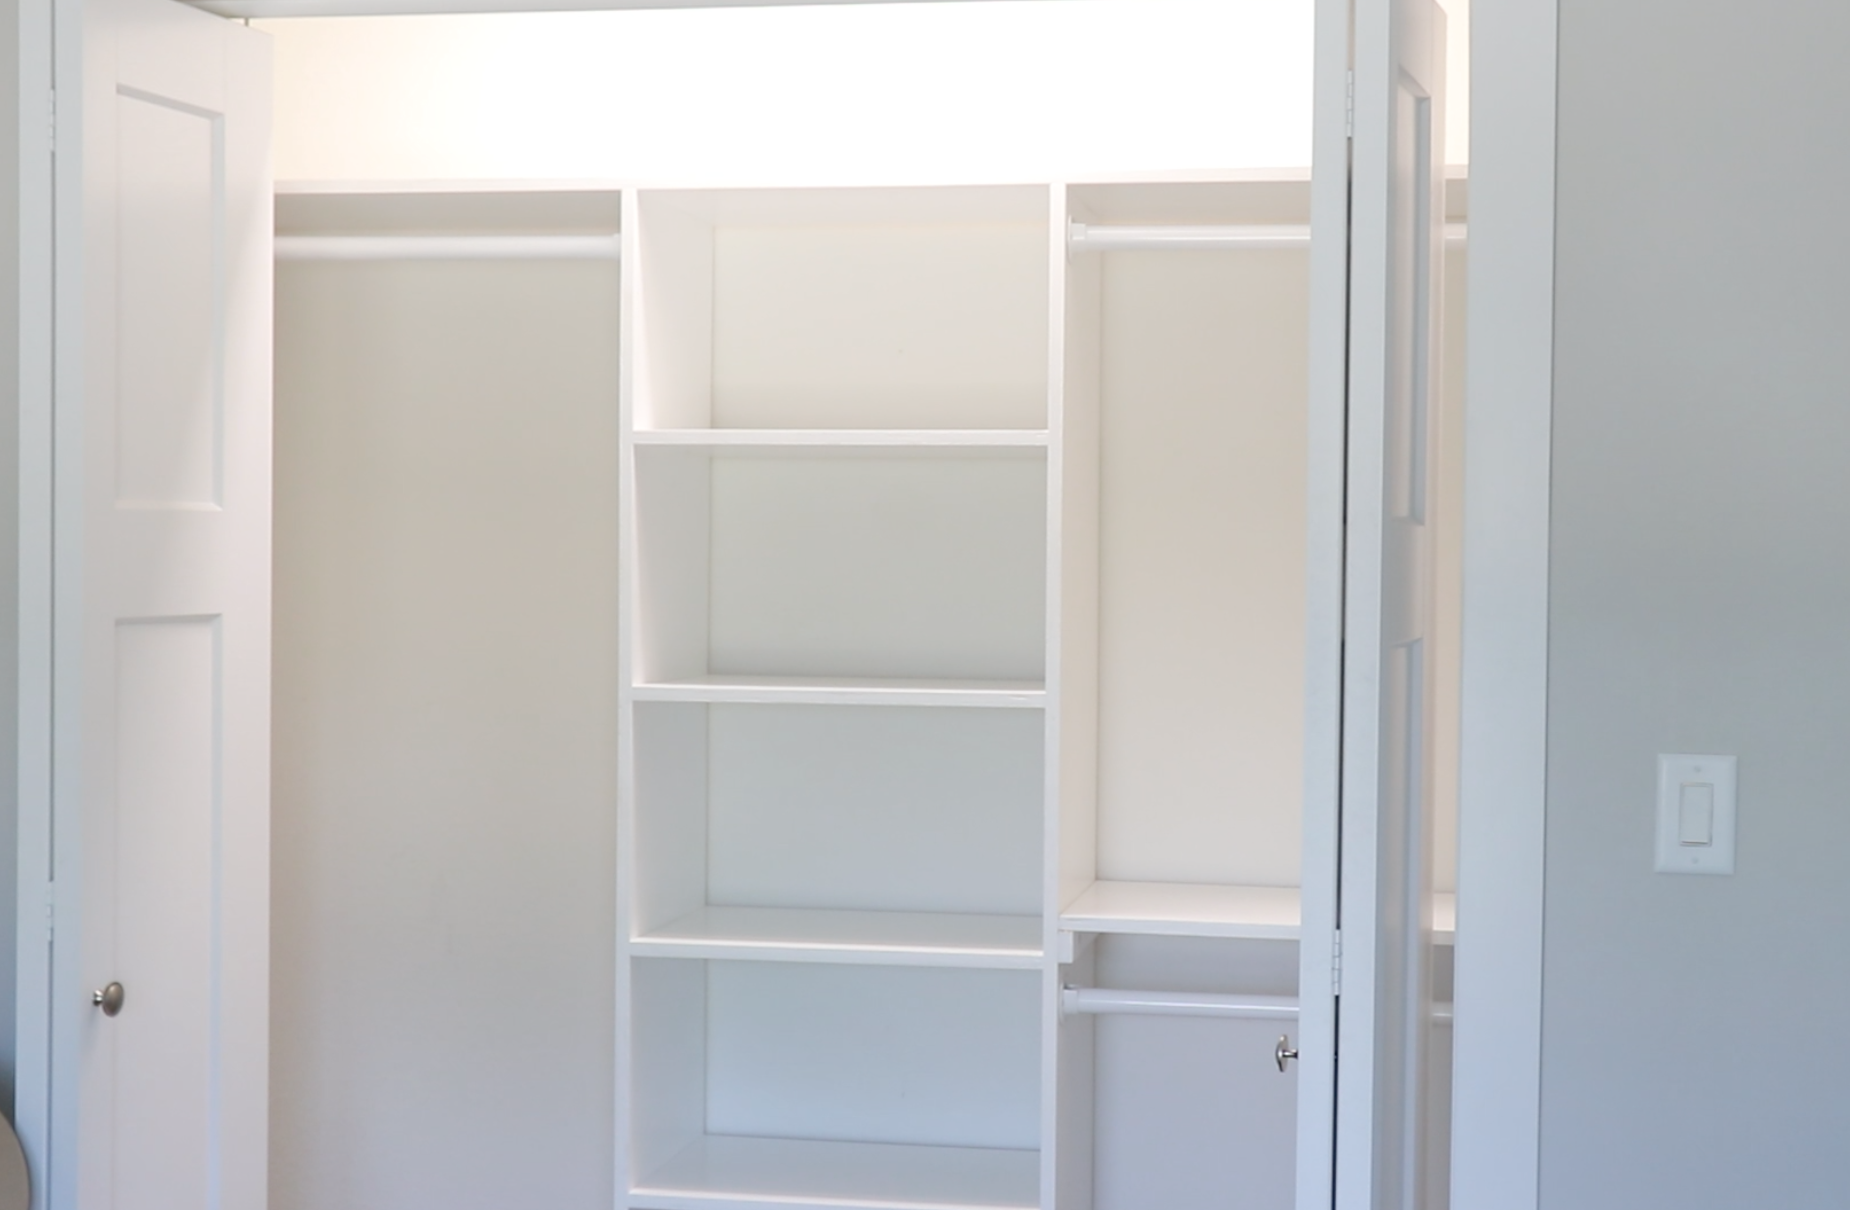 How To Build A Custom Closet For 100 Diy Woodworking Philip Miller Furniture